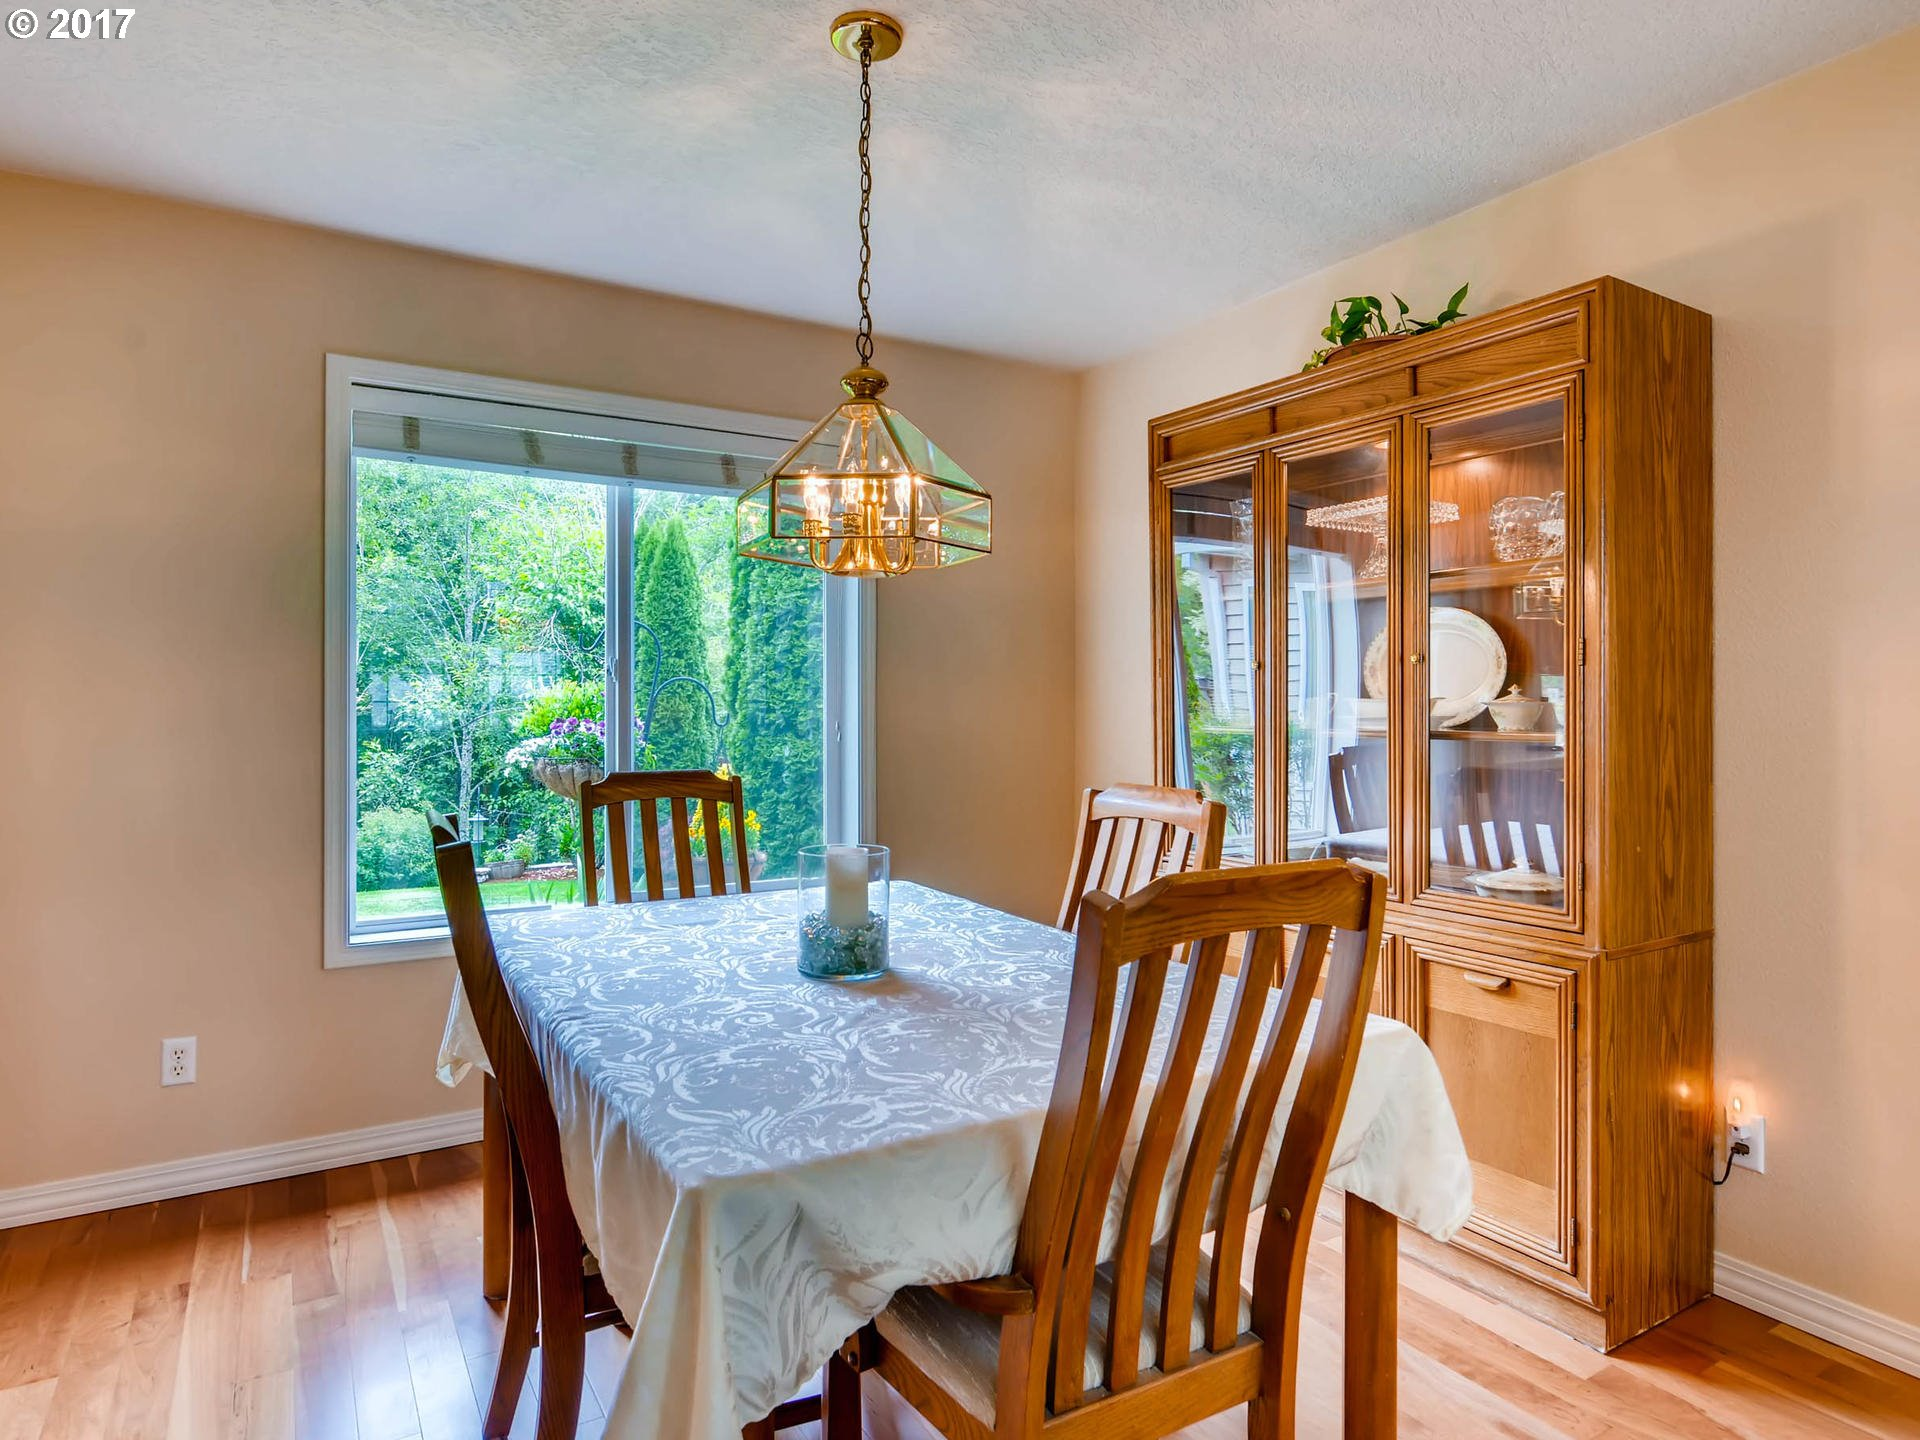 14896 NW FAWNLILY DR Portland, OR 97229 - MLS #: 17618225